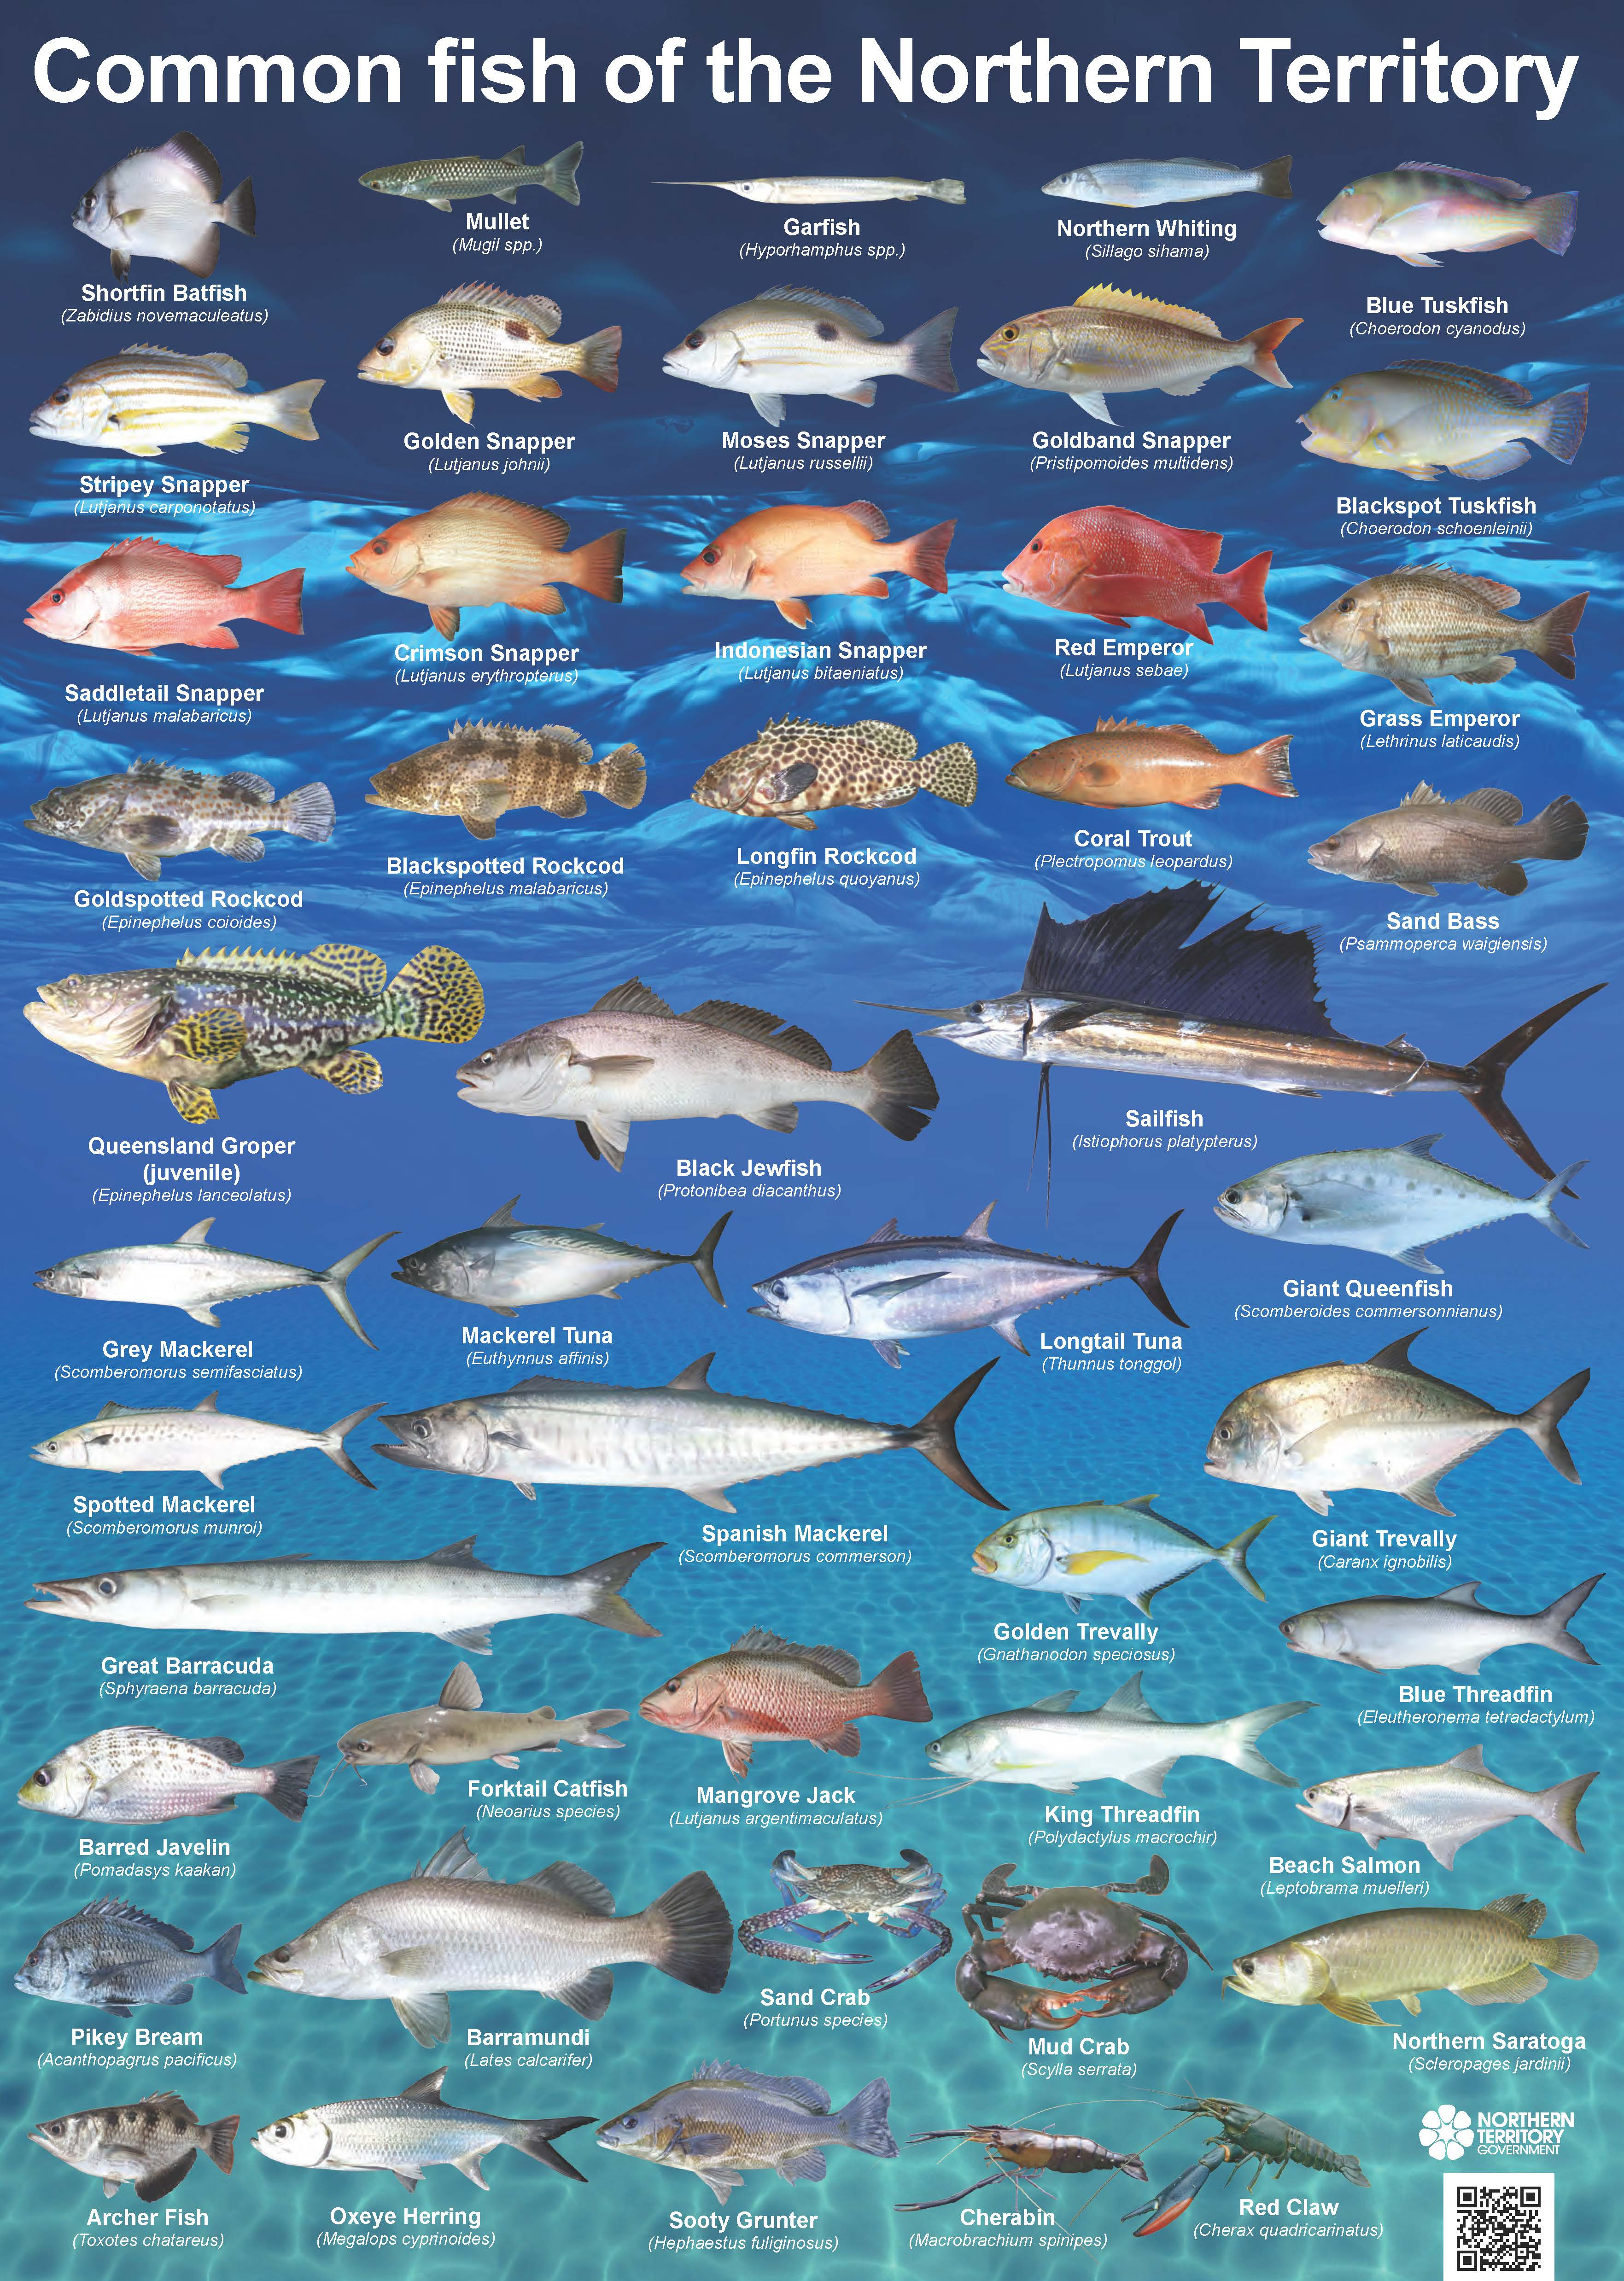 Common fish of the NT